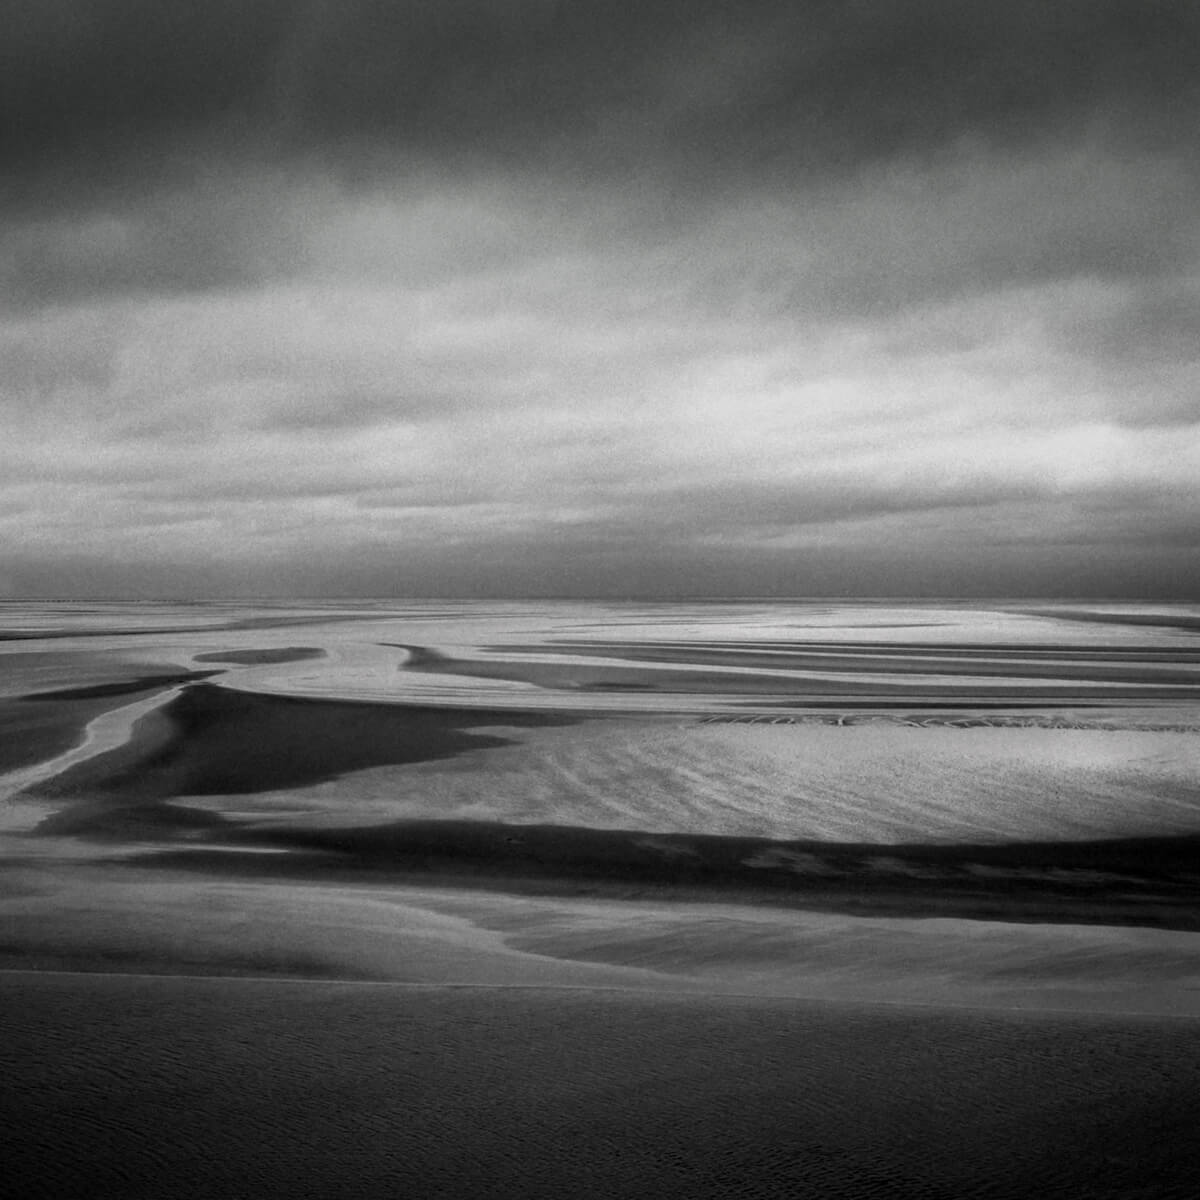 Bay of Mont Saint-Michel - Bronica SQ-A with 80mm lens, Arista EDU 100 (Fomapan)